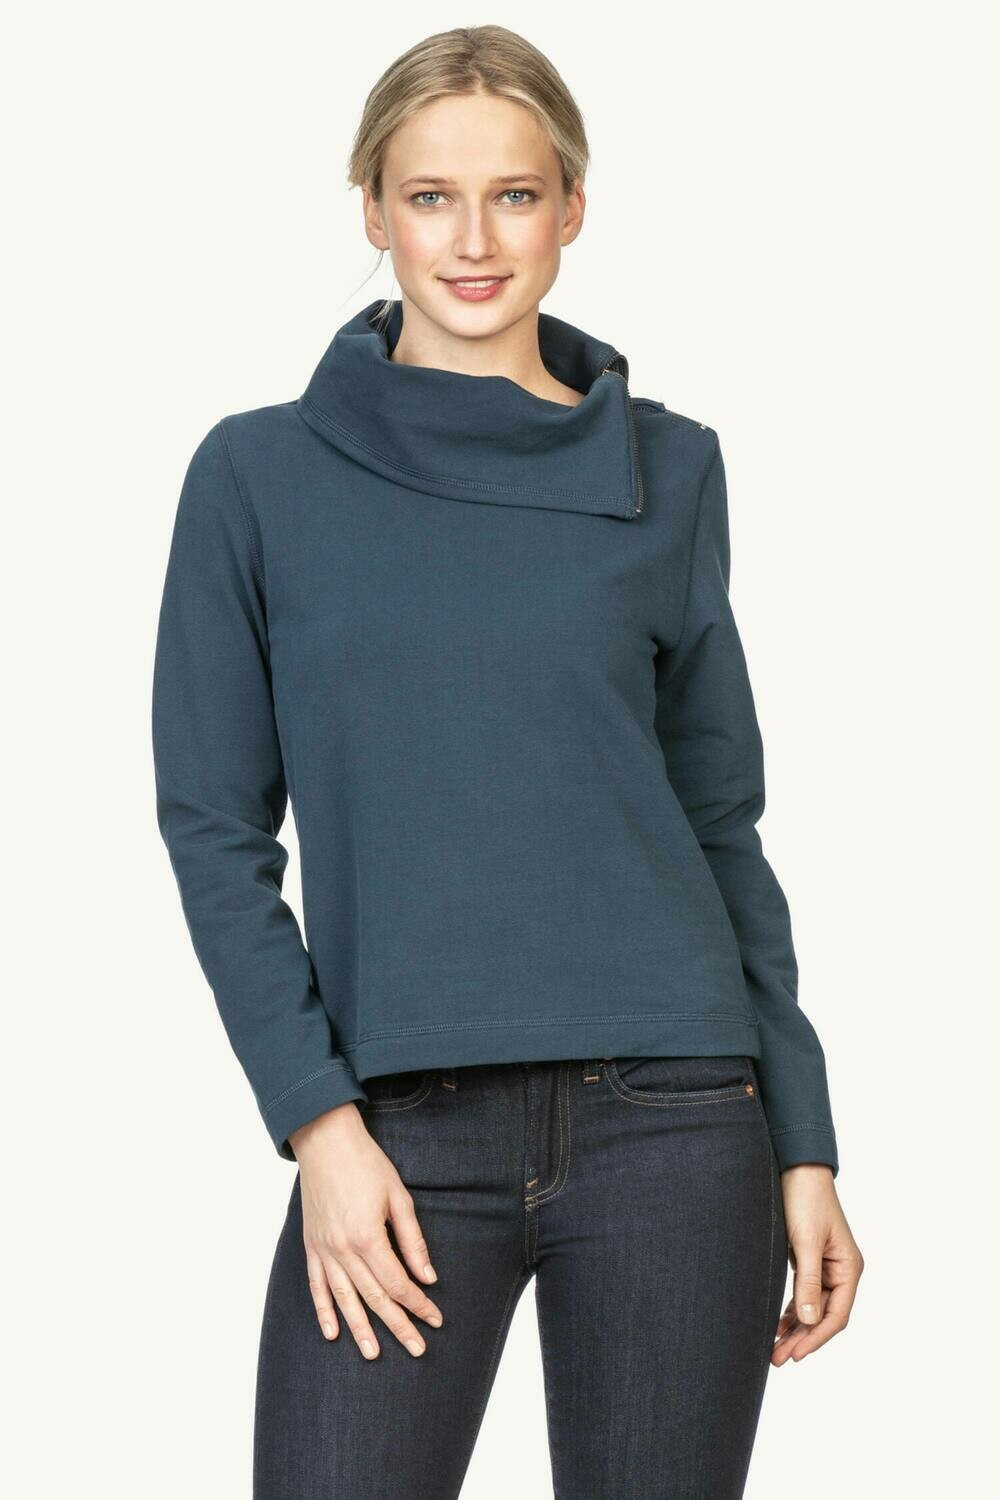 Lilla P Zip Top Lake M